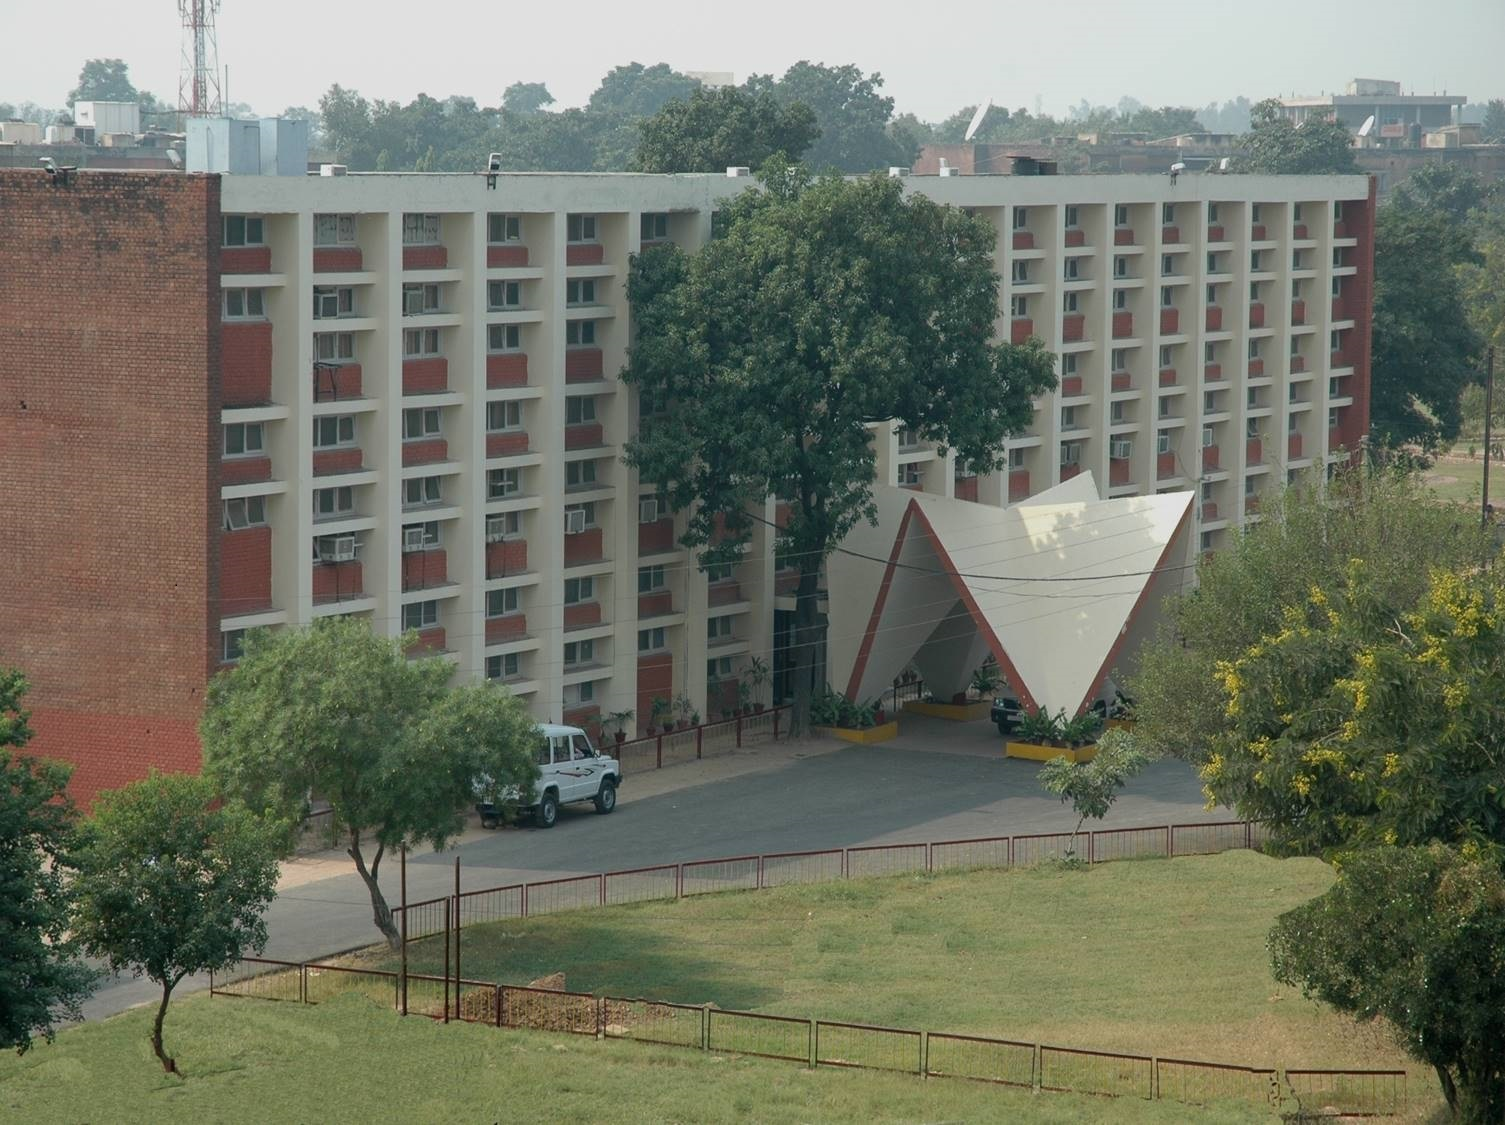 CHANDIGARH COLLEGE OF ENGG. AND TECH. (DIPLOMA WING), CHANDIGARH